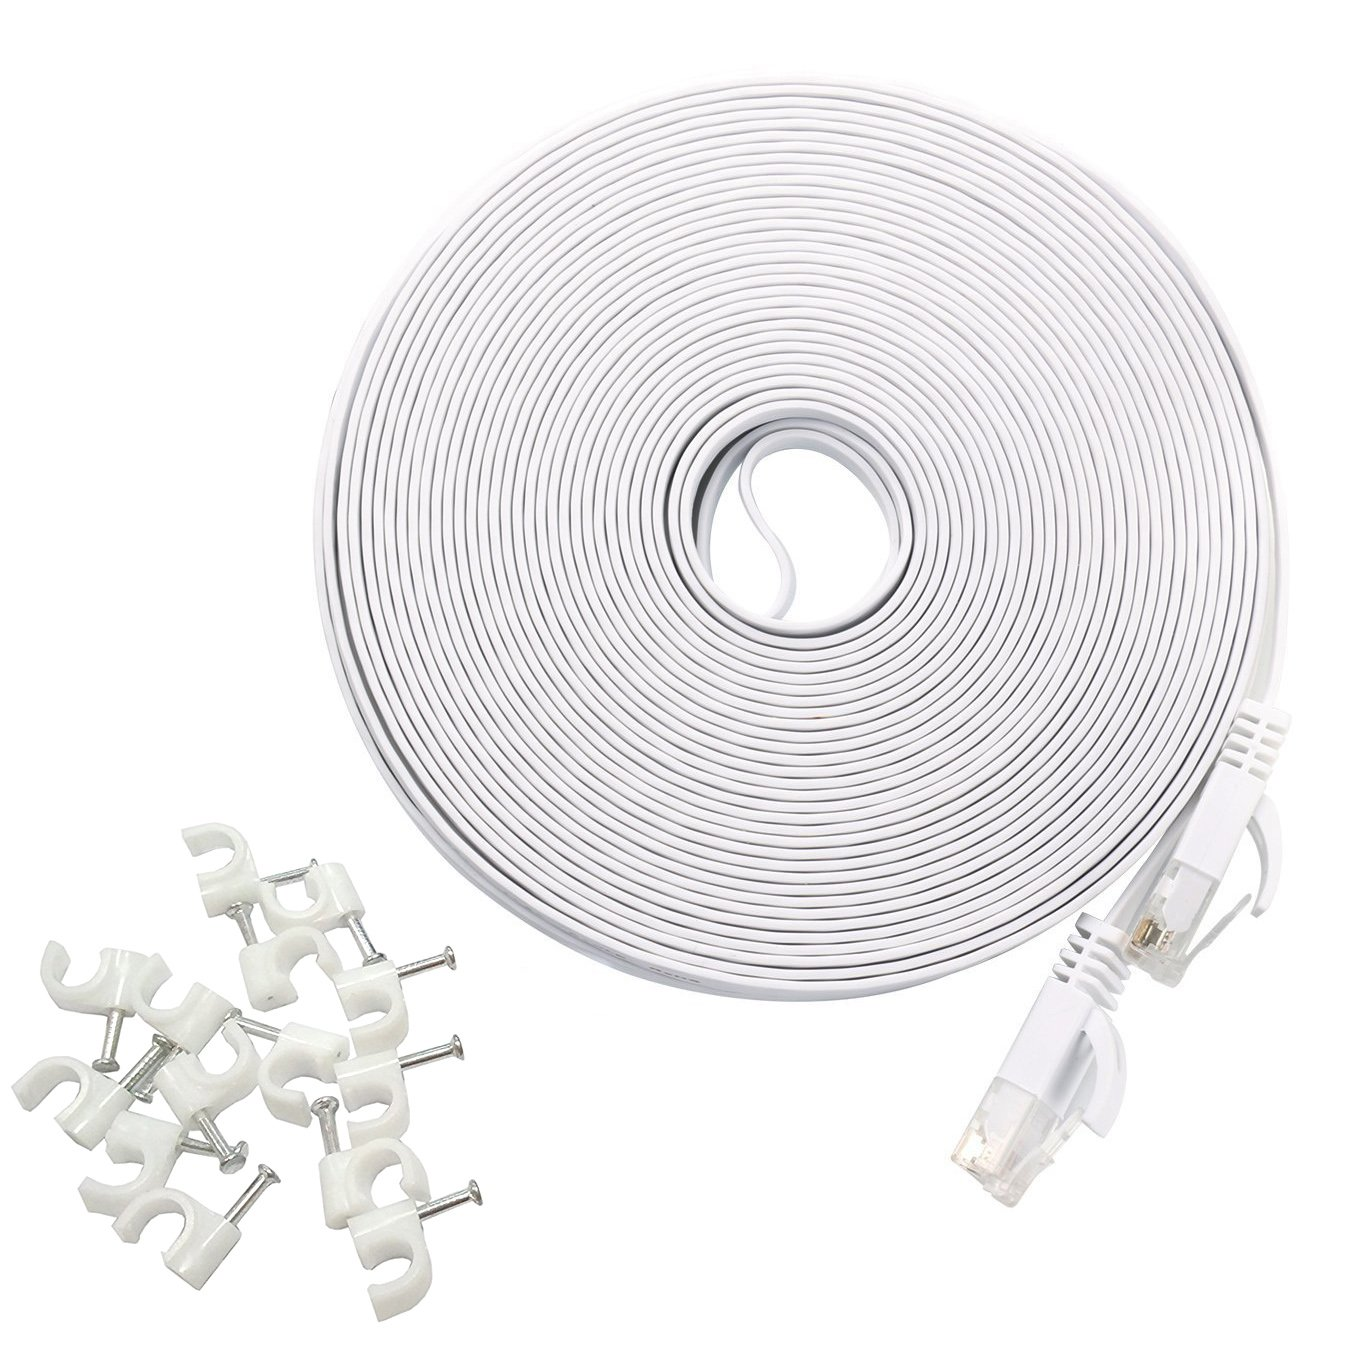 HANYUN Cat6 1000Mbps 250MHz Flat Ethernet Patch internet Cable (50 ft / 15 Meters - White) with Cable Clips with RJ45 Connectors Ultra Speed Gigabit for Modem Router LAN Printer MAC Laptop